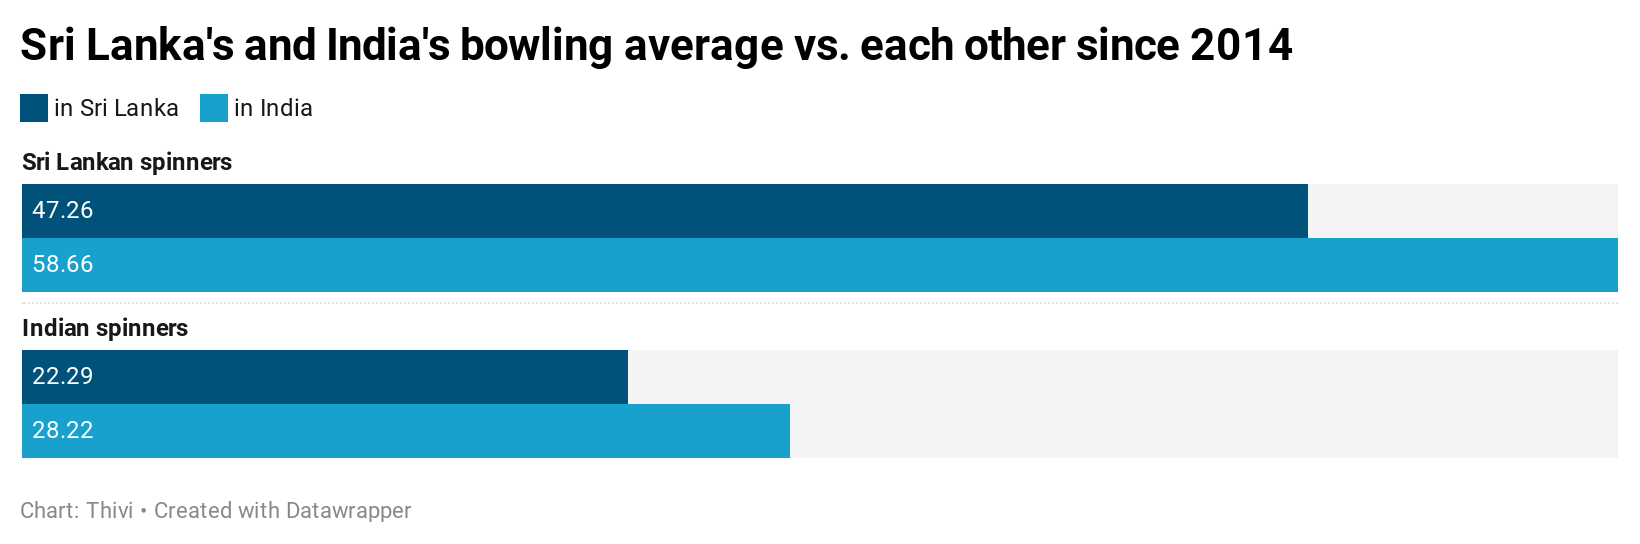 Sri Lanka's and India's bowling average against each other since 2014